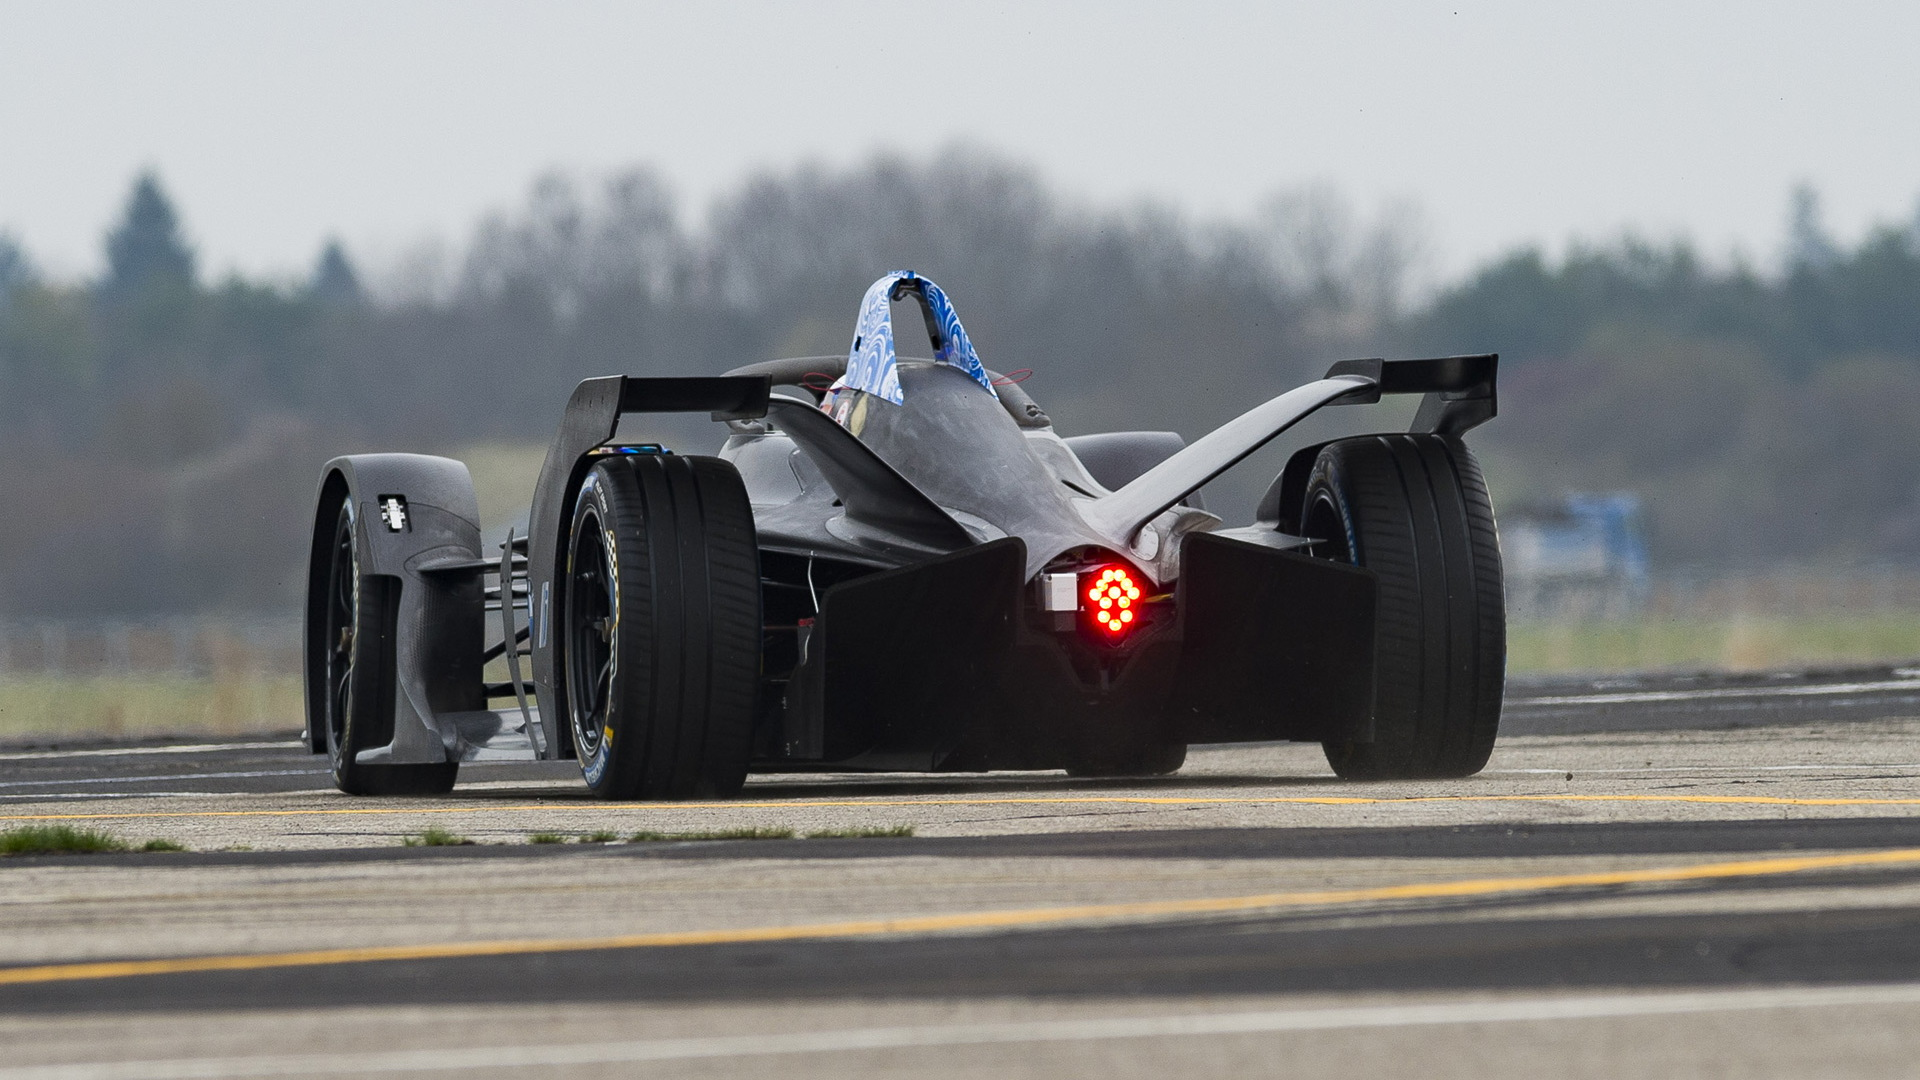 2018/2019 BMW iFE.18 Formula E race car